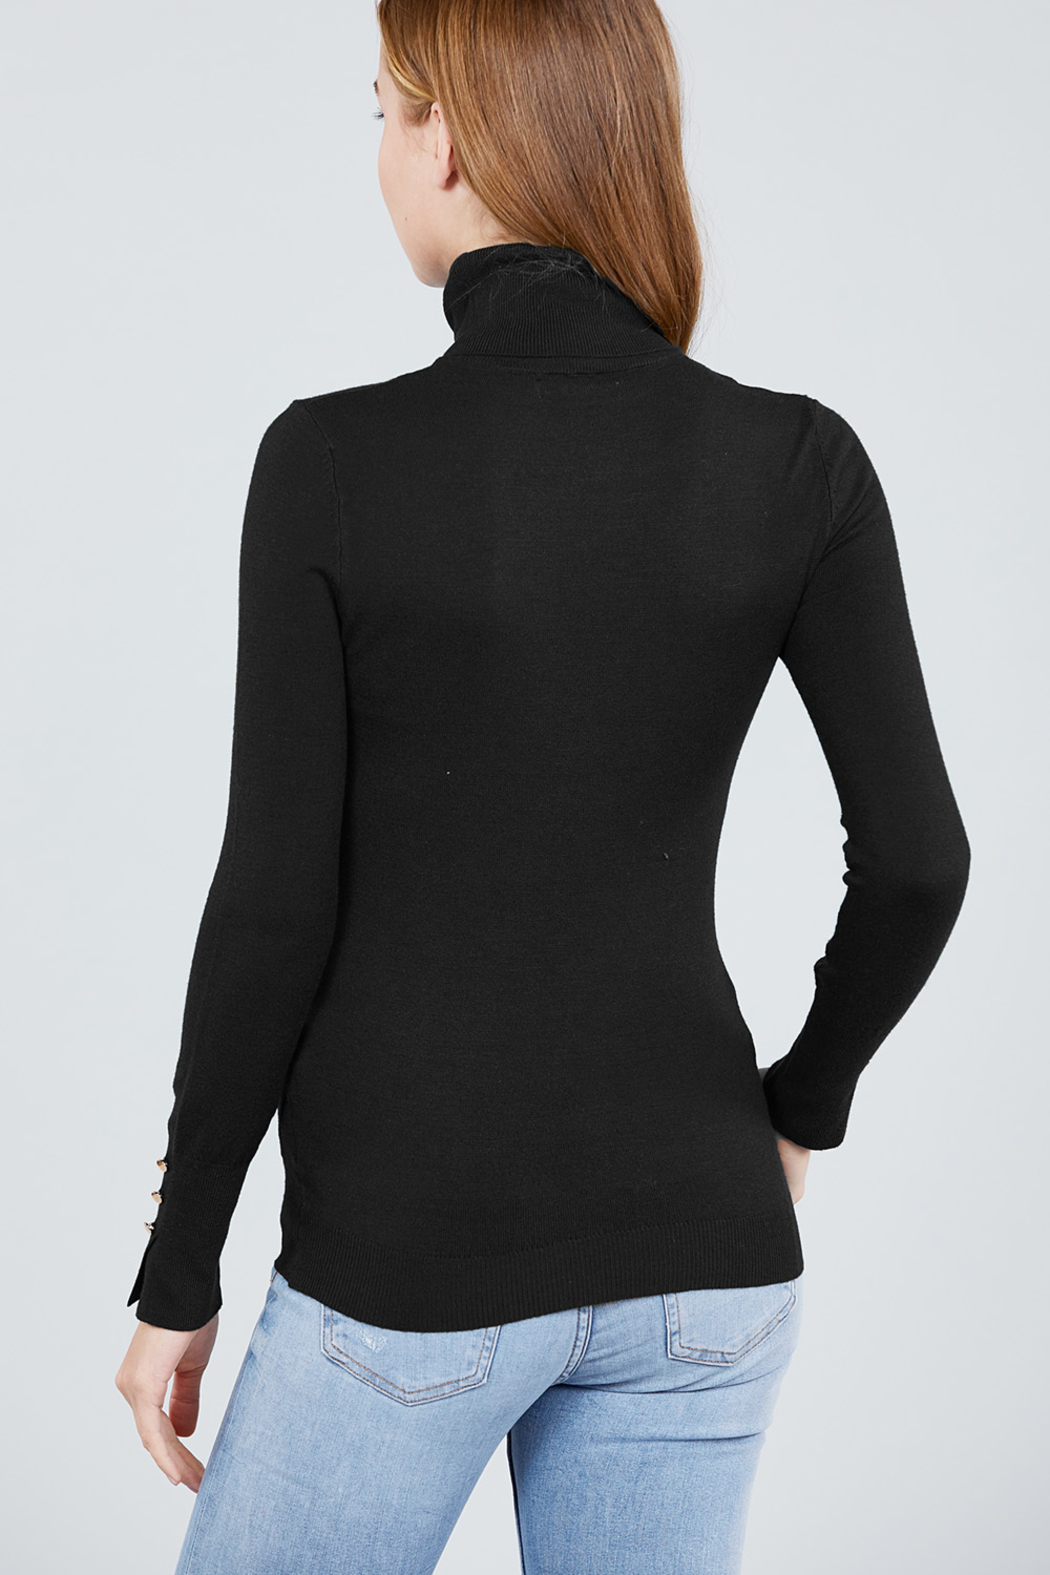 Active Basic Turtle-Neck light weight sweater - Side Cropped Image